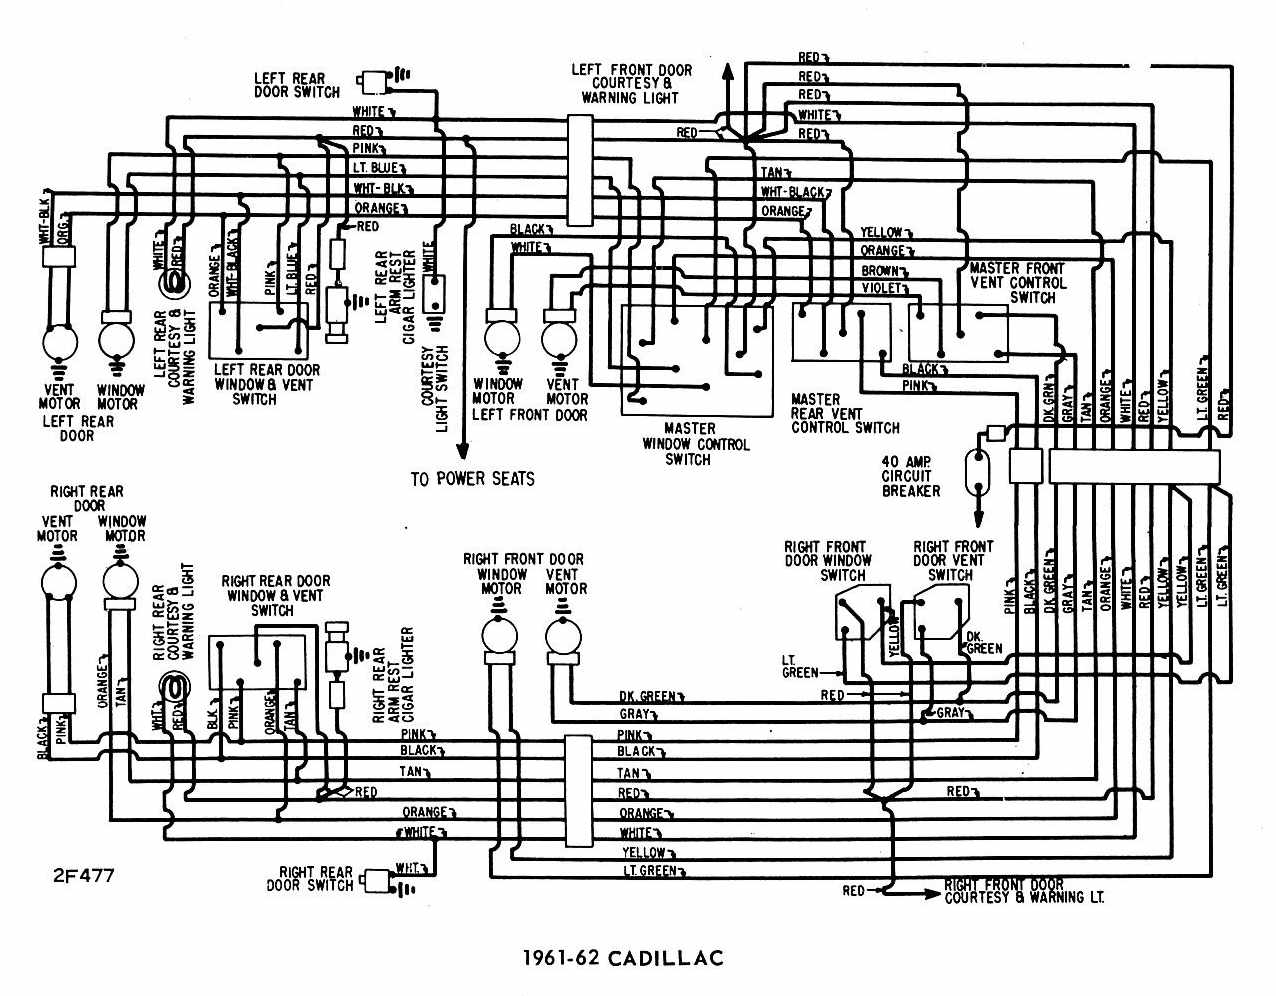 [SCHEMATICS_43NM]  CADILLAC - Car PDF Manual, Wiring Diagram & Fault Codes DTC | 2000 Cadillac Eldorado Engine Diagram |  | automotive-manuals.net